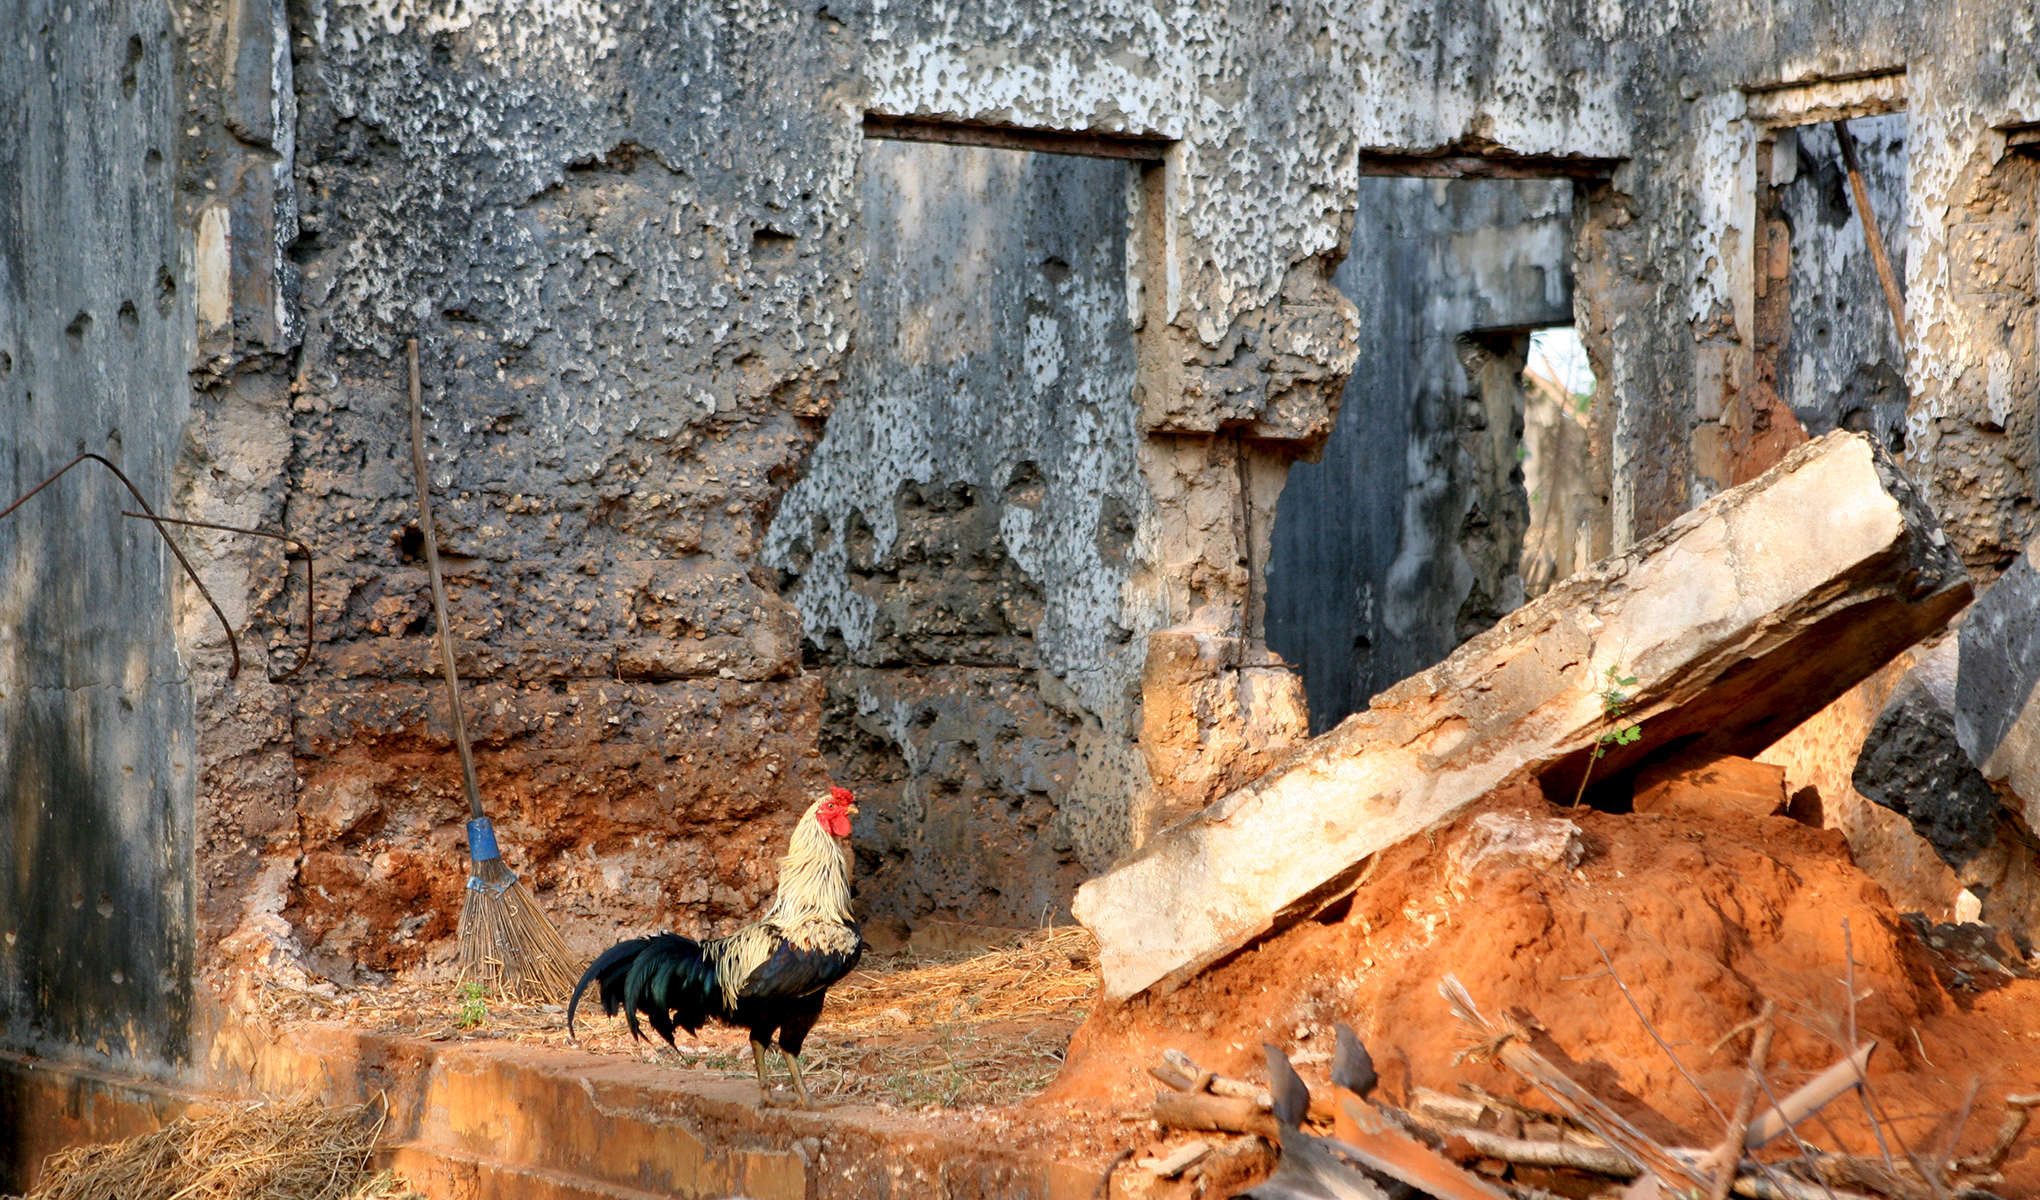 ROOSTER-JAY_S-VILLAGE-20120331_4003